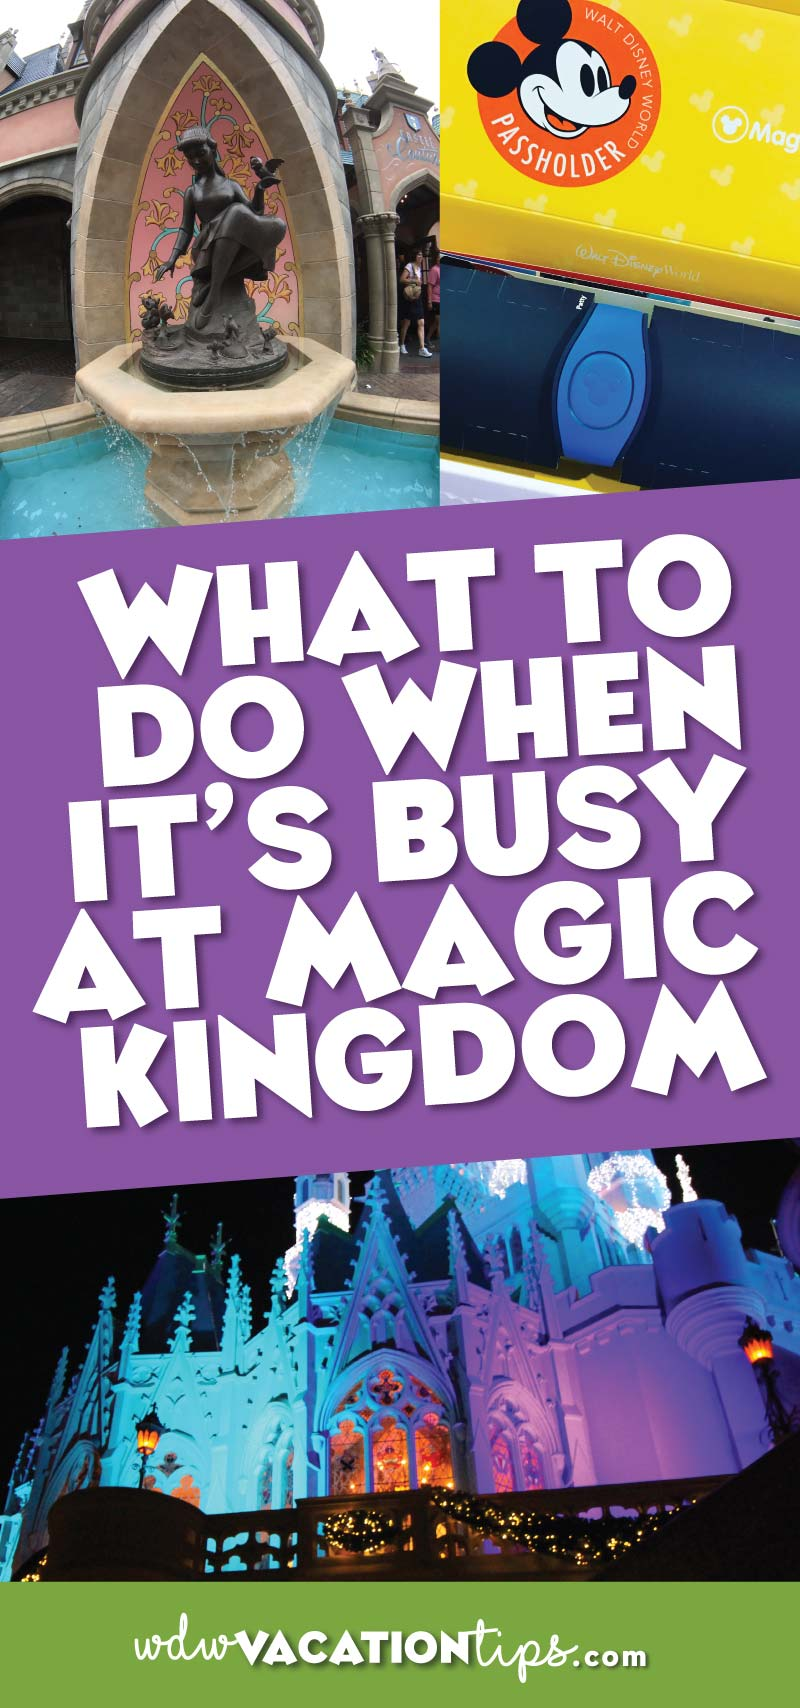 Sometimes you can't help but visit Disney during peak season. We have some tips and ideas for what you should do when it's crowded at the Magic Kingdom.